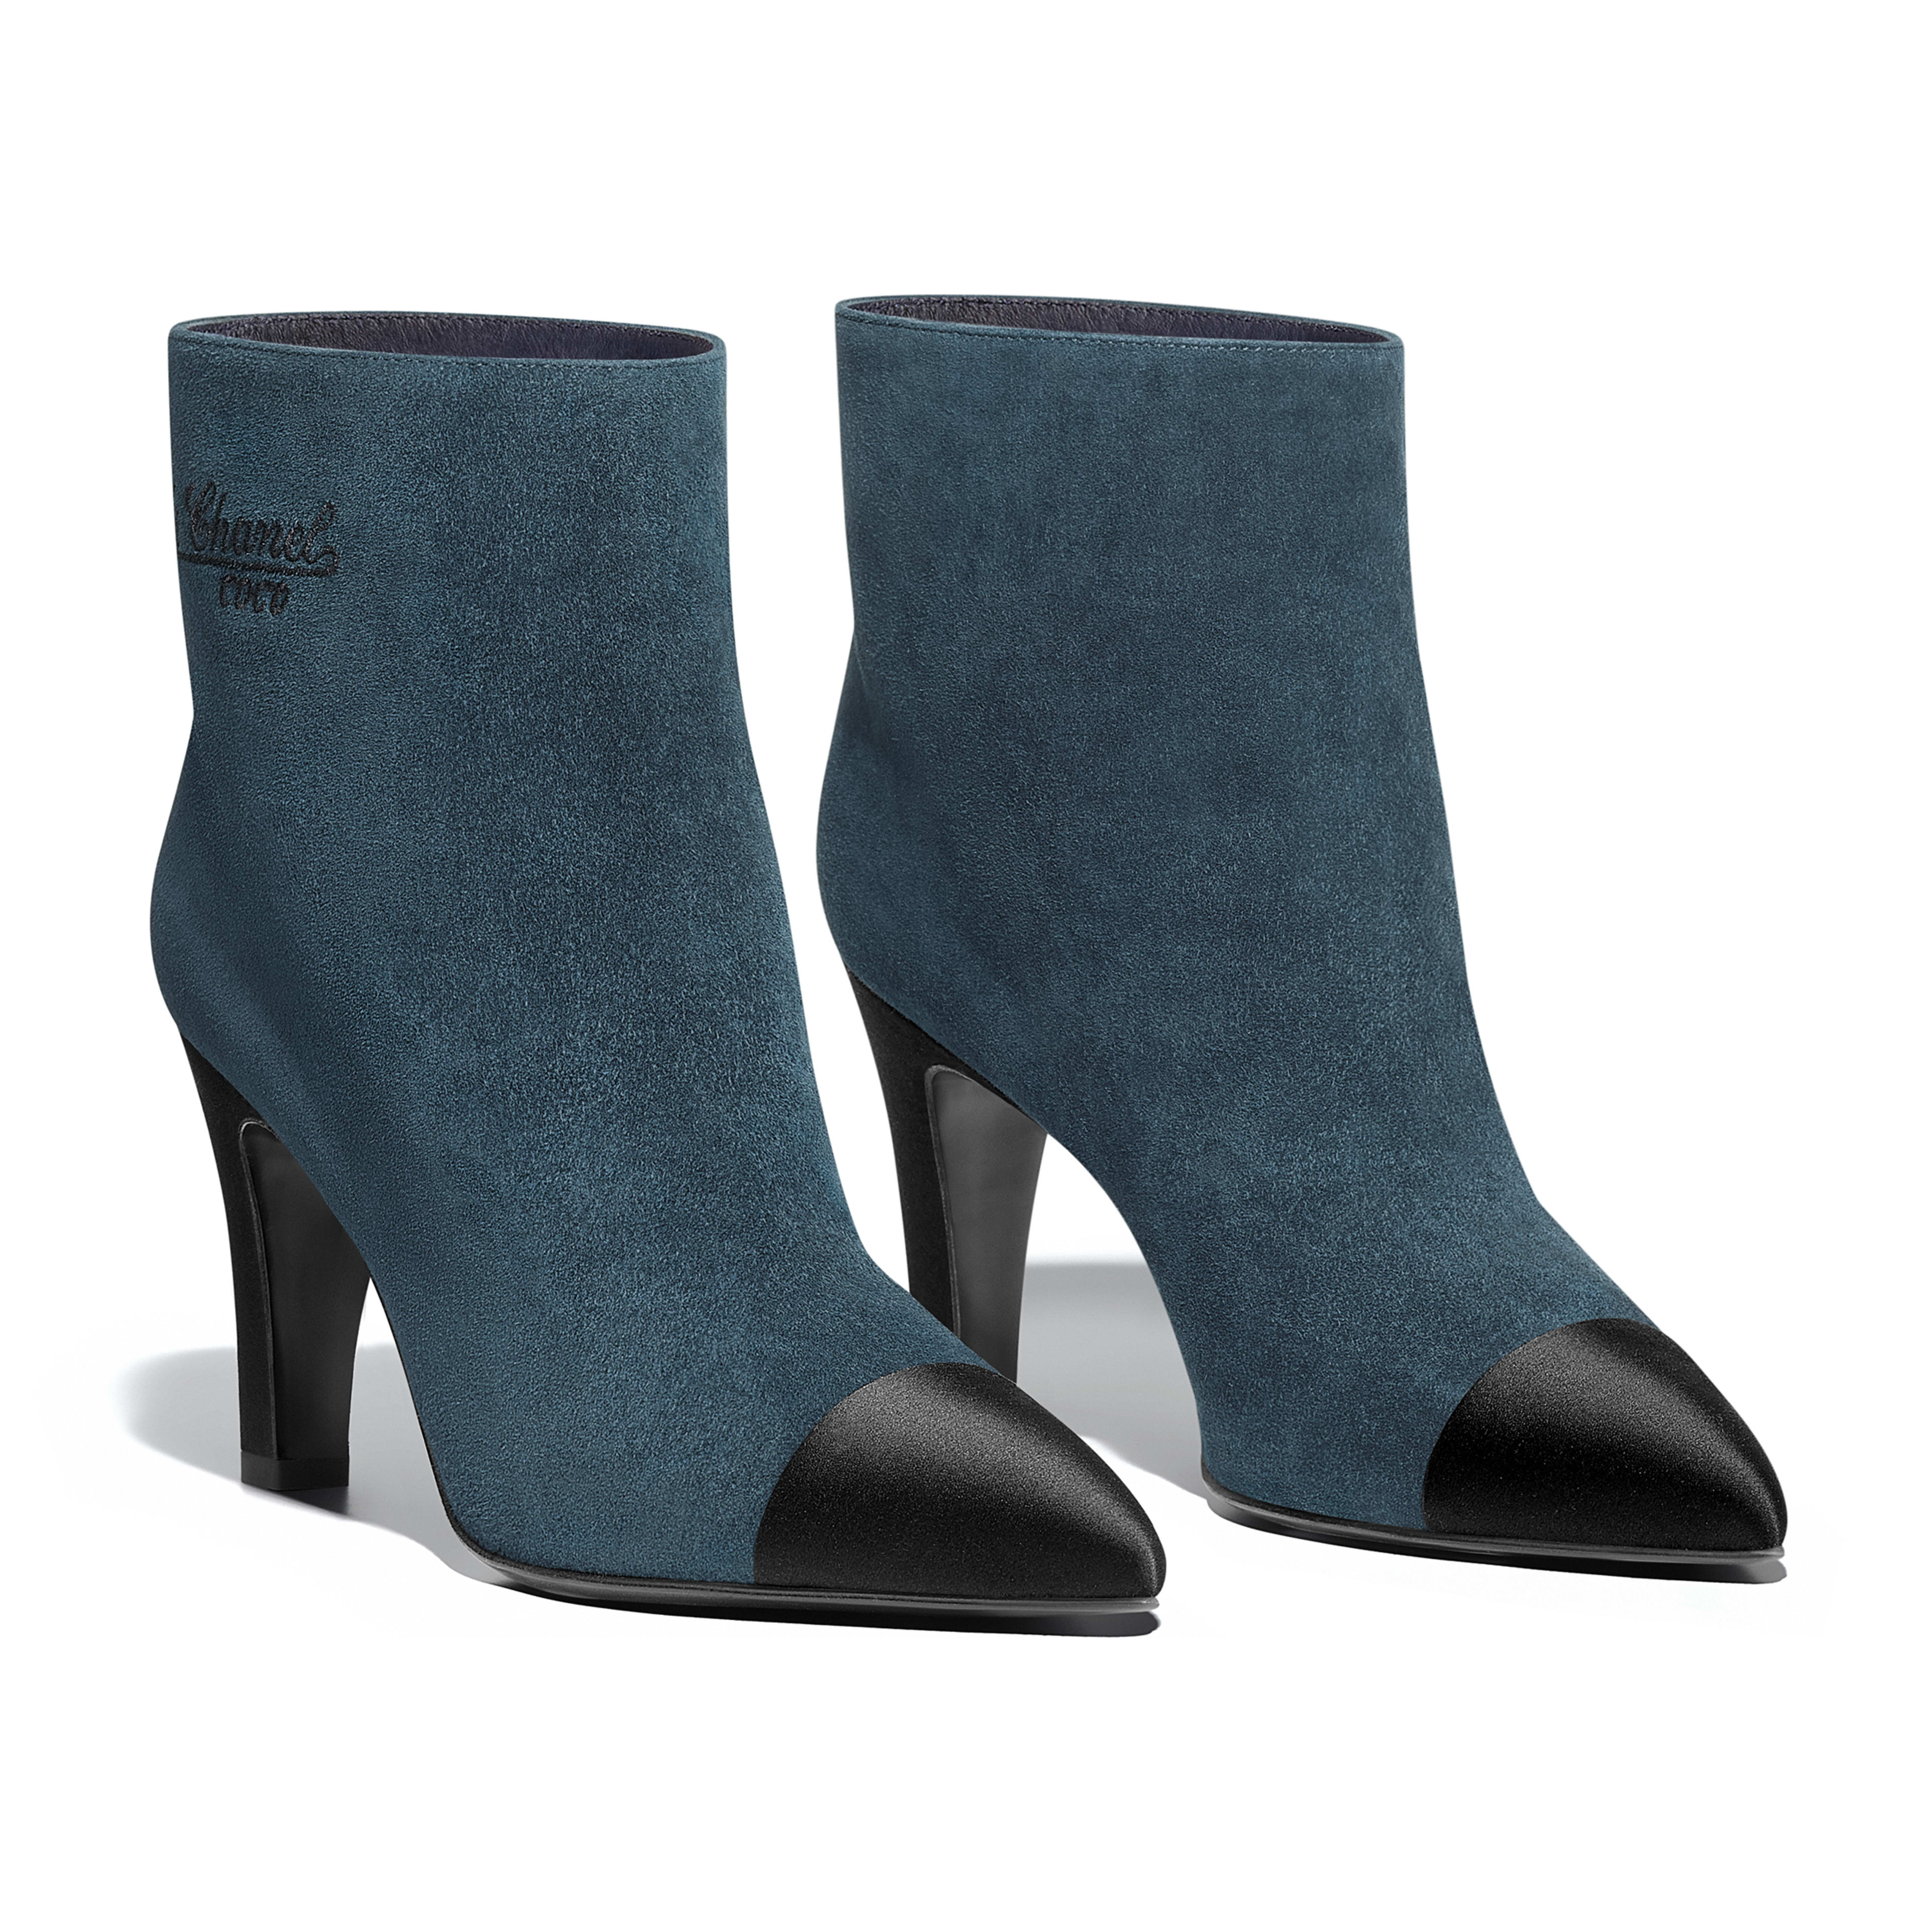 Short Boots - Blue & Black - Suede Calfskin & Satin - Alternative view - see full sized version